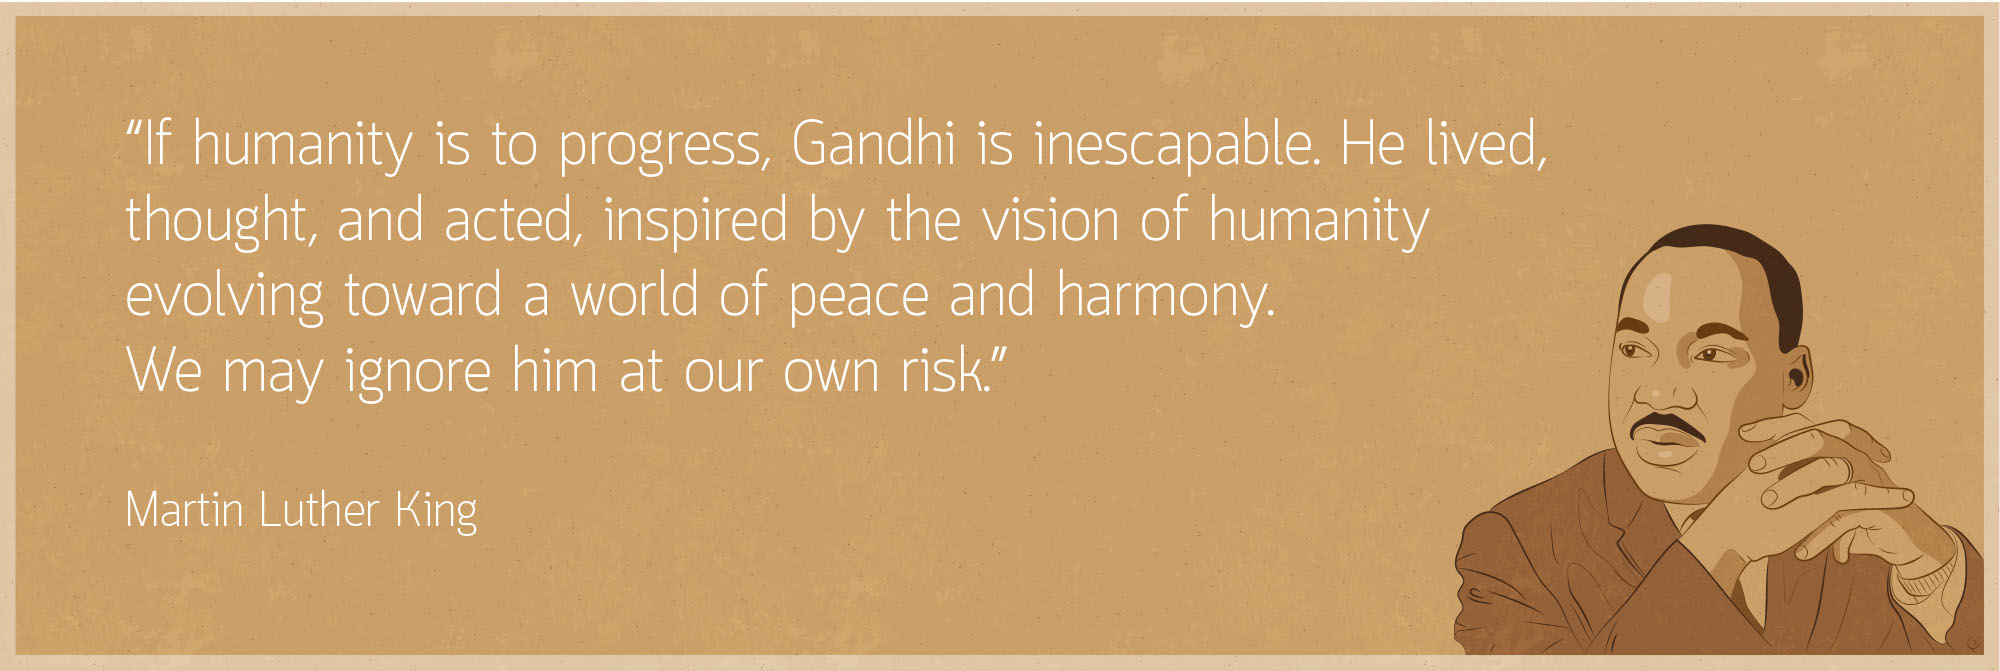 Martin Luther King Borderless Gandhi website homepage